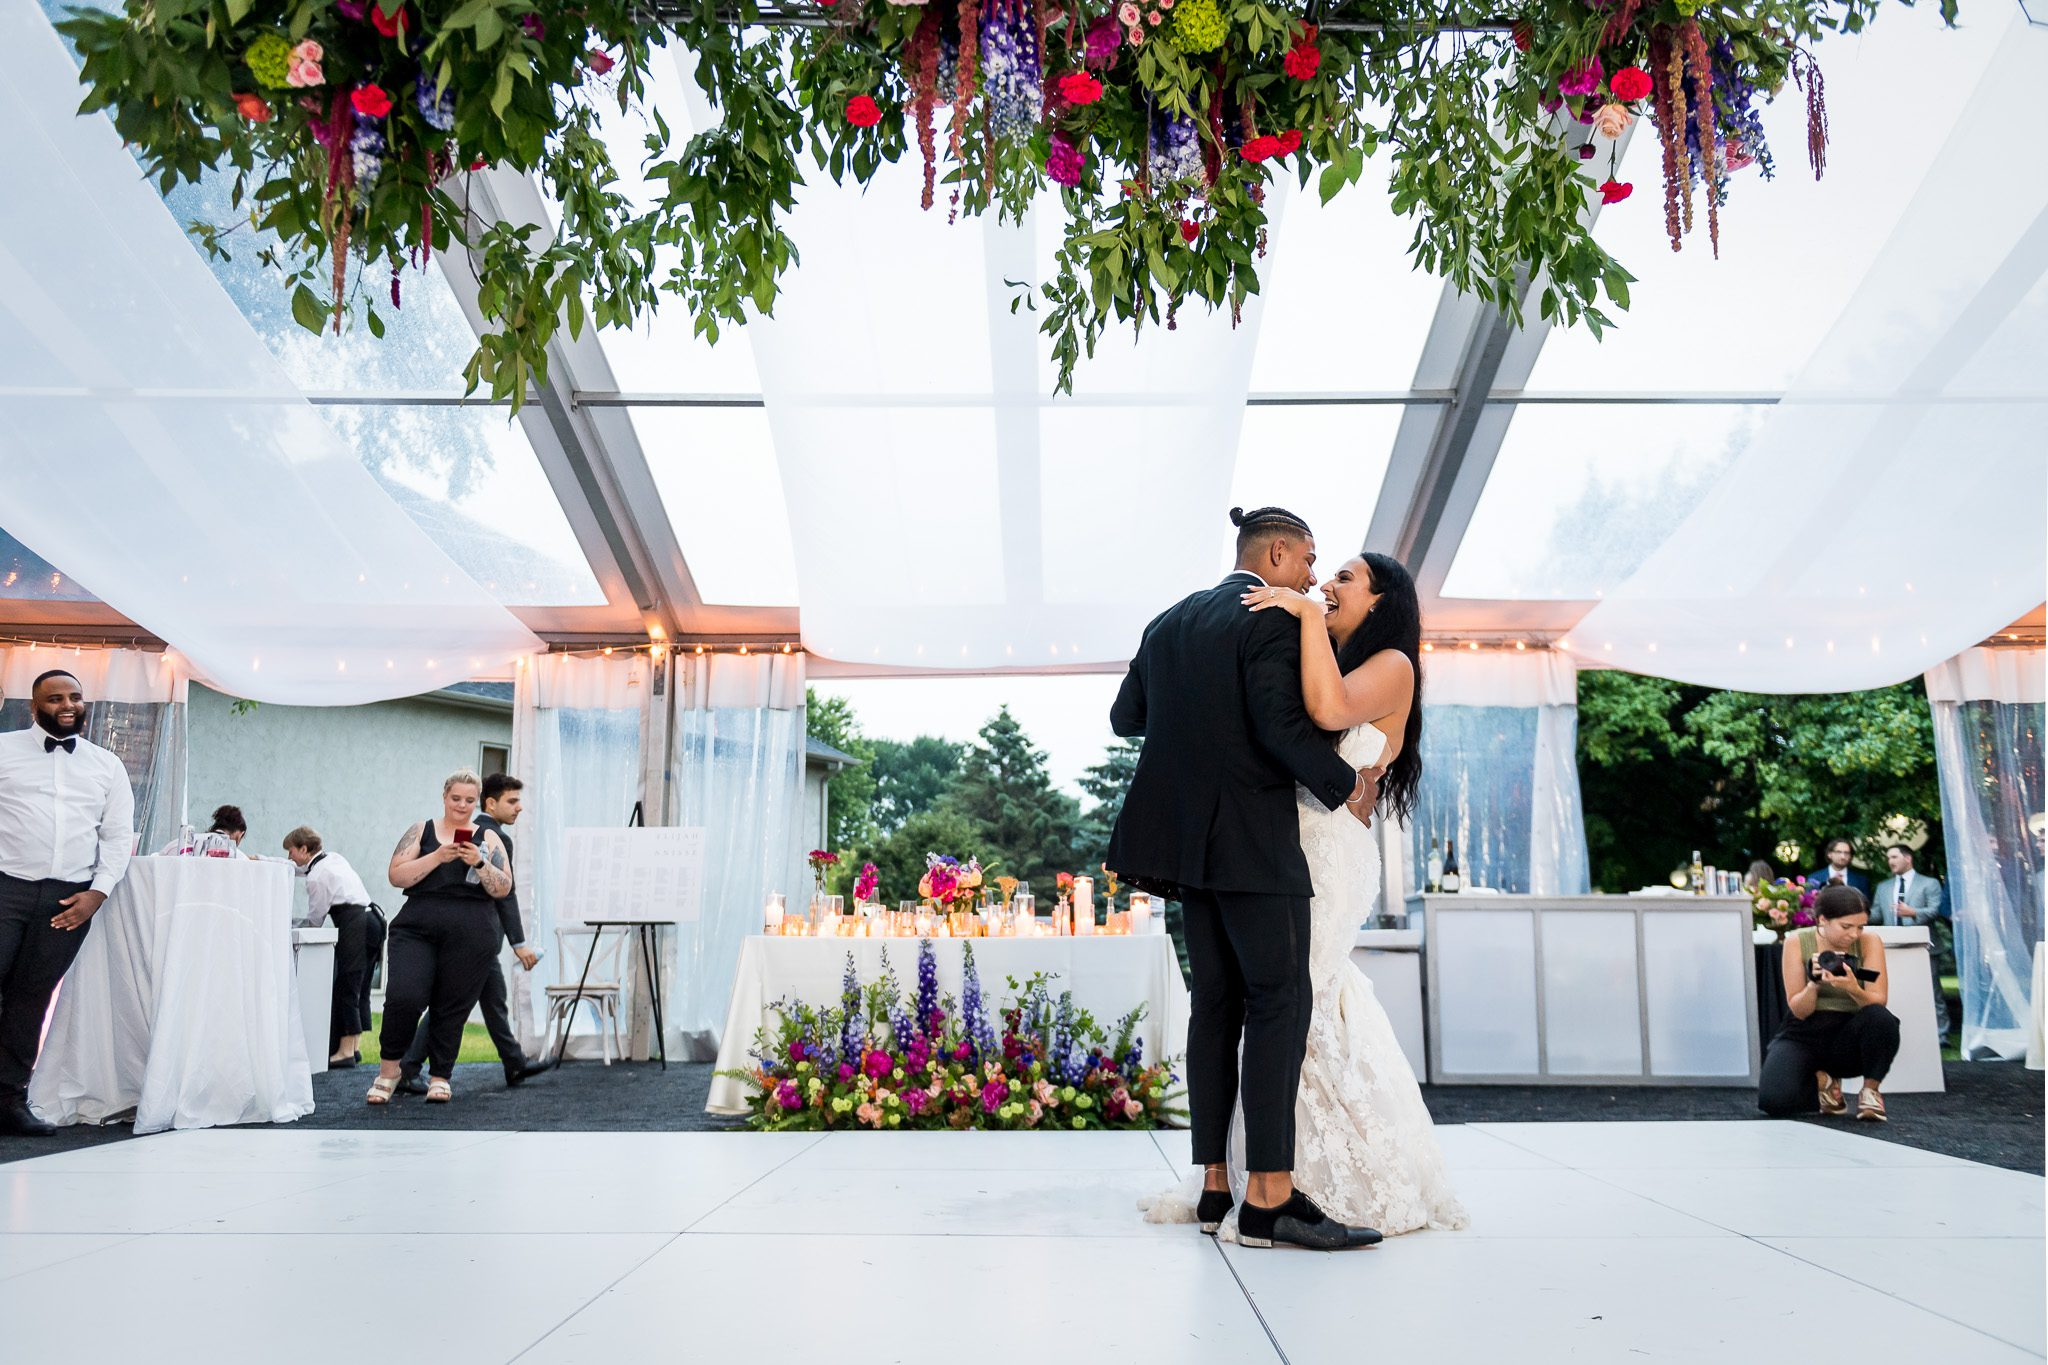 Bride and Groom share their first dance under a beautifully decorated tent at their backyard wedding in Minnesota.